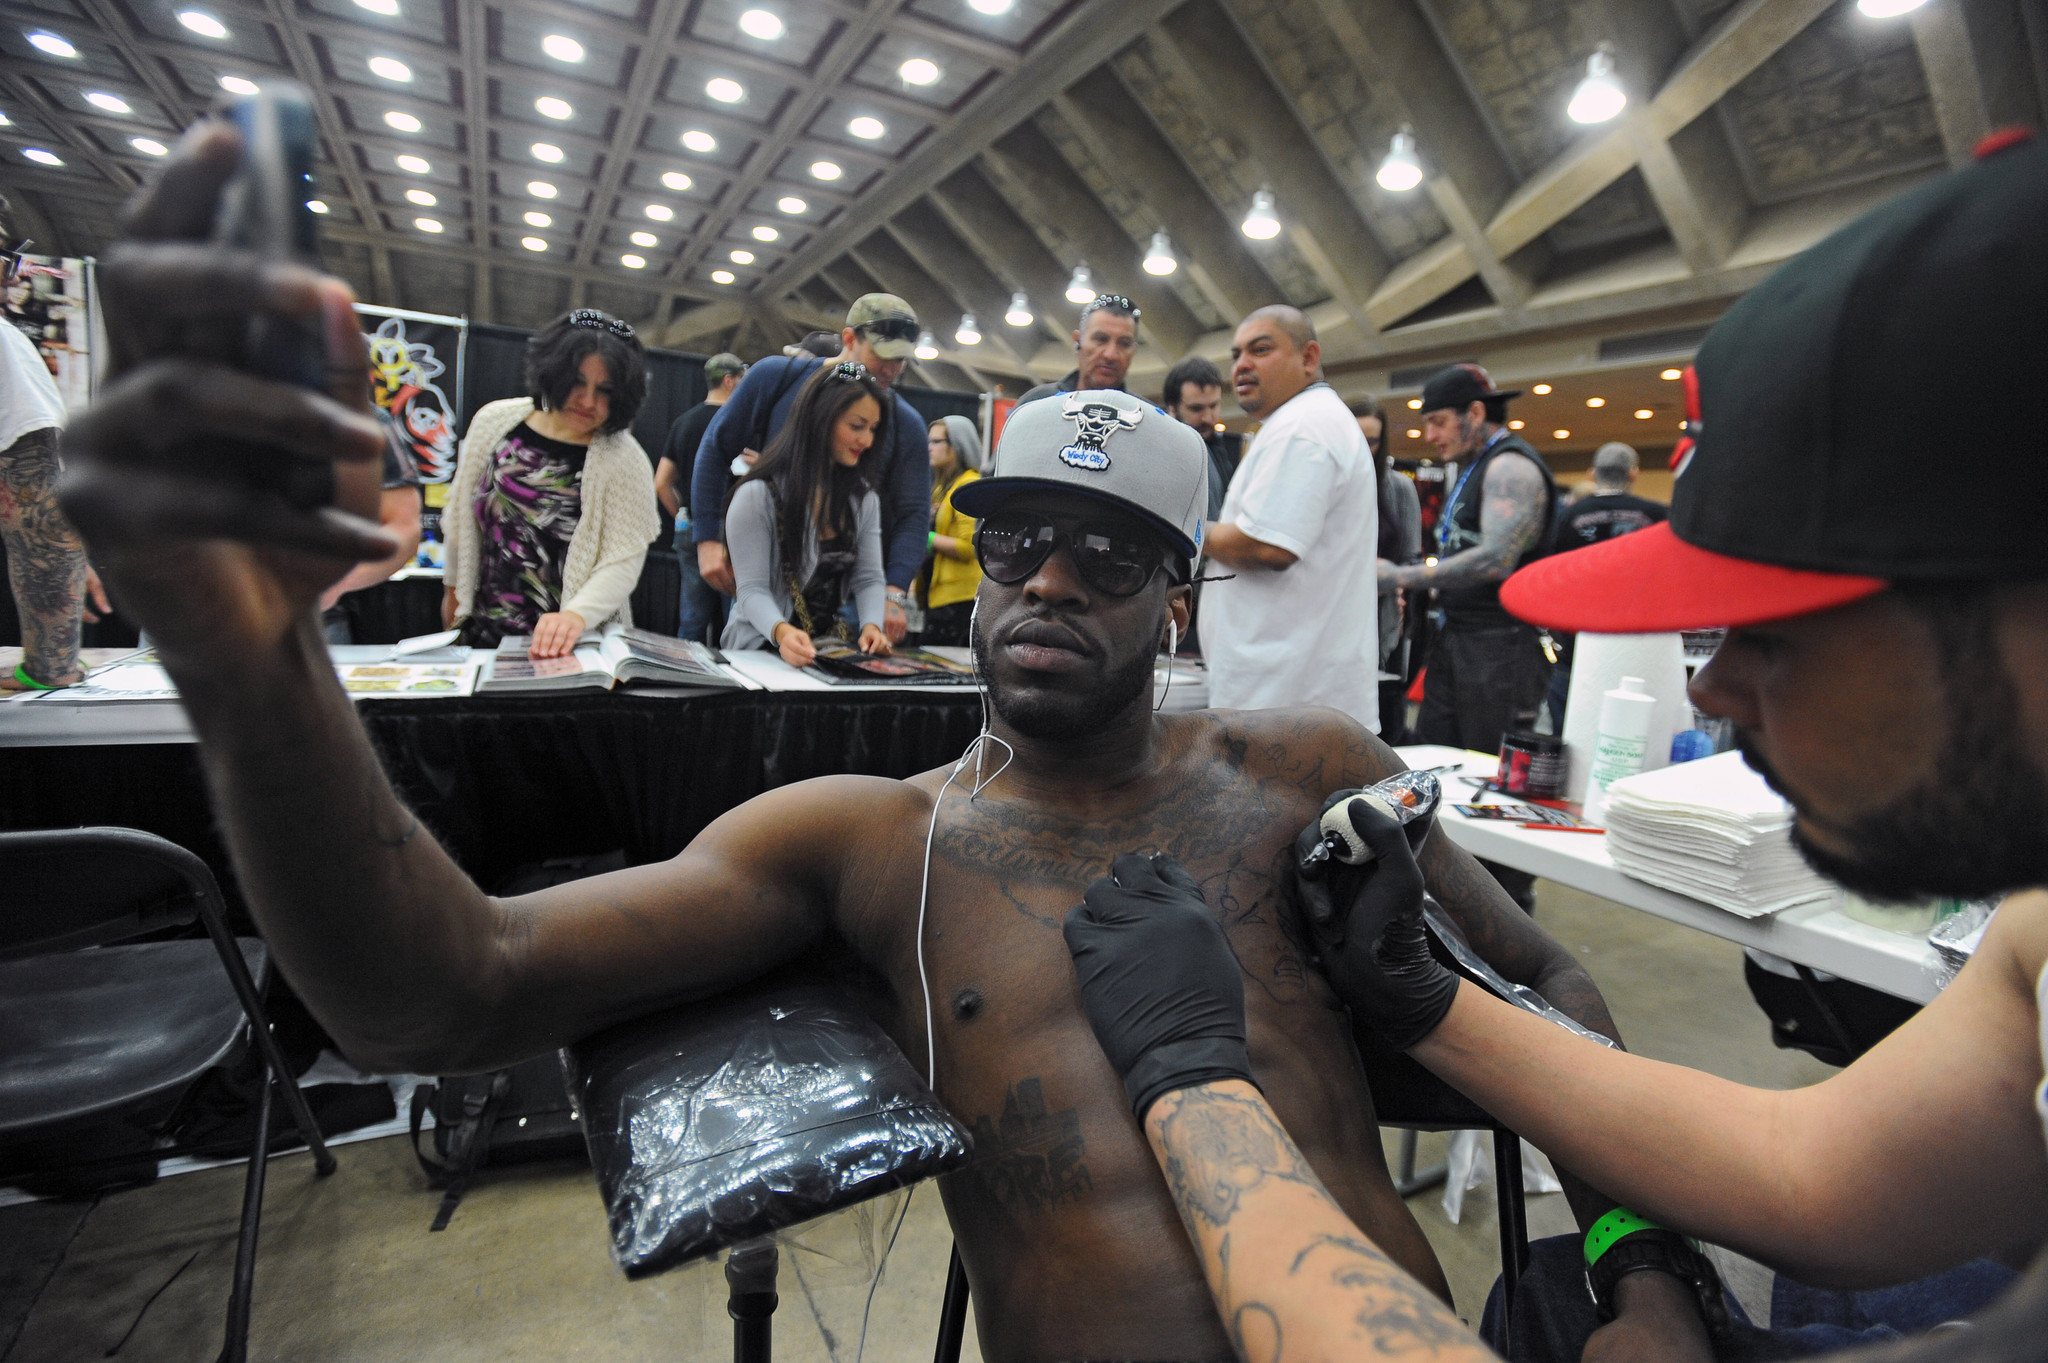 Baltimore Tattoo Arts convention shows influence of Instagram ...